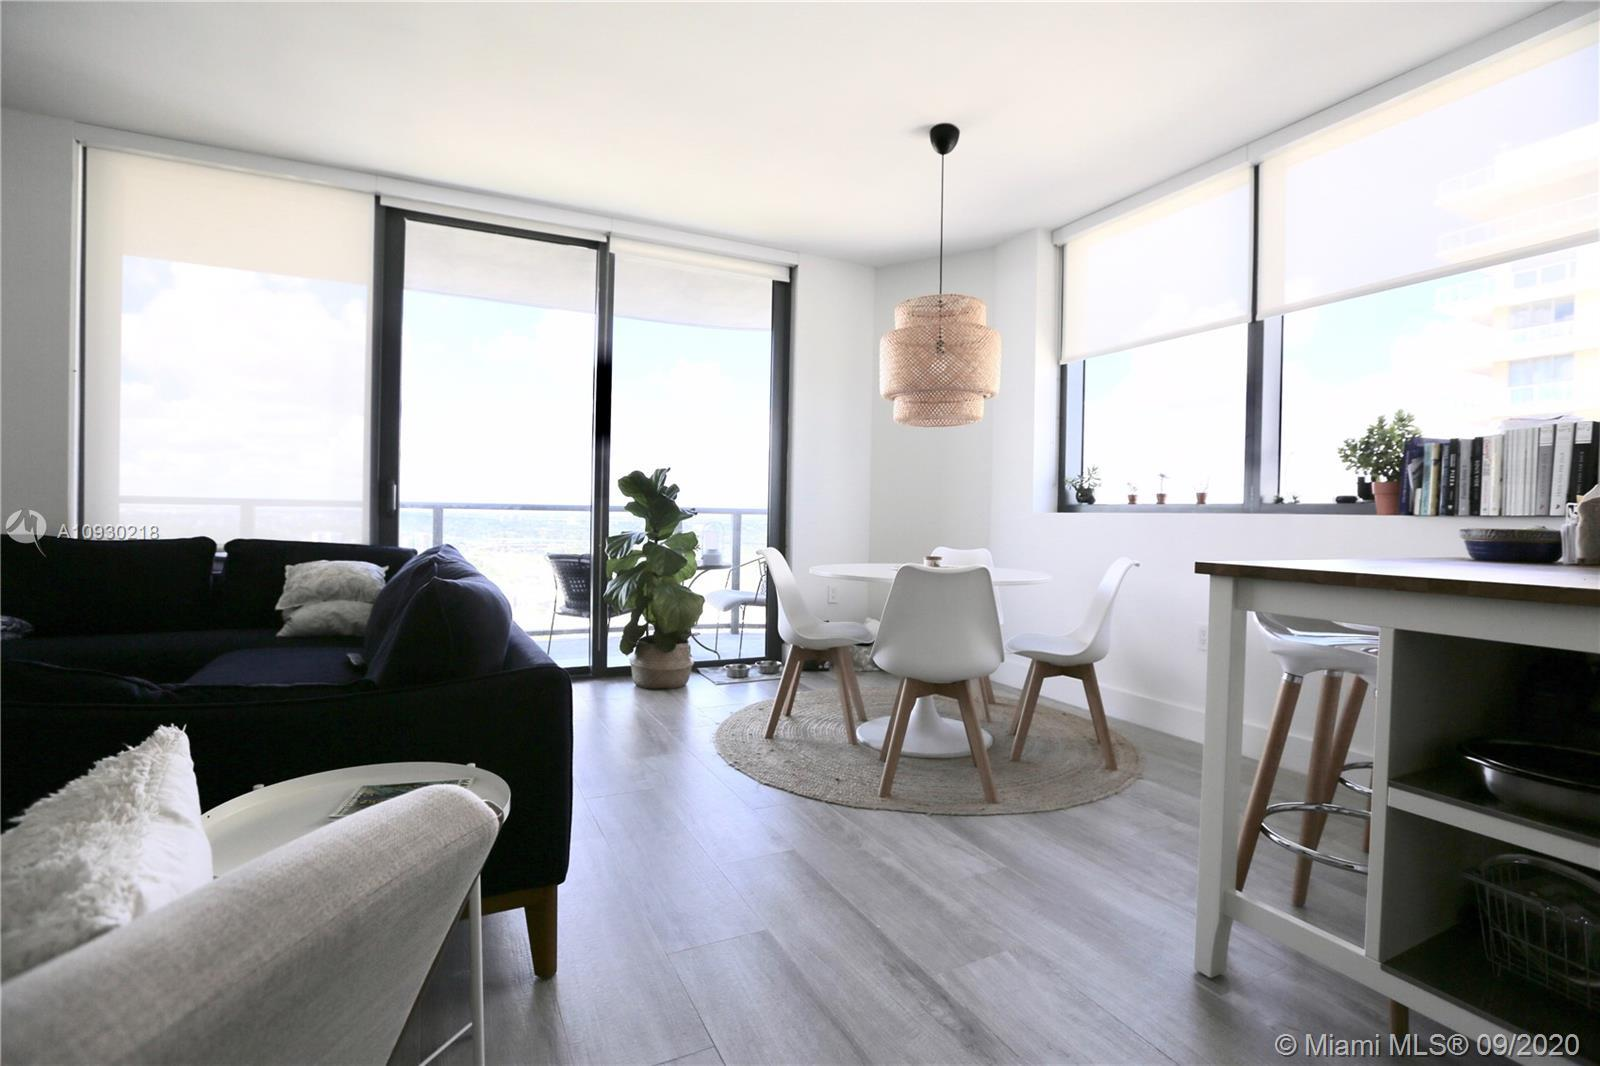 Come, see the unit. Seller is motivated. Can be sold furnished. Association allows rent 12 times a y